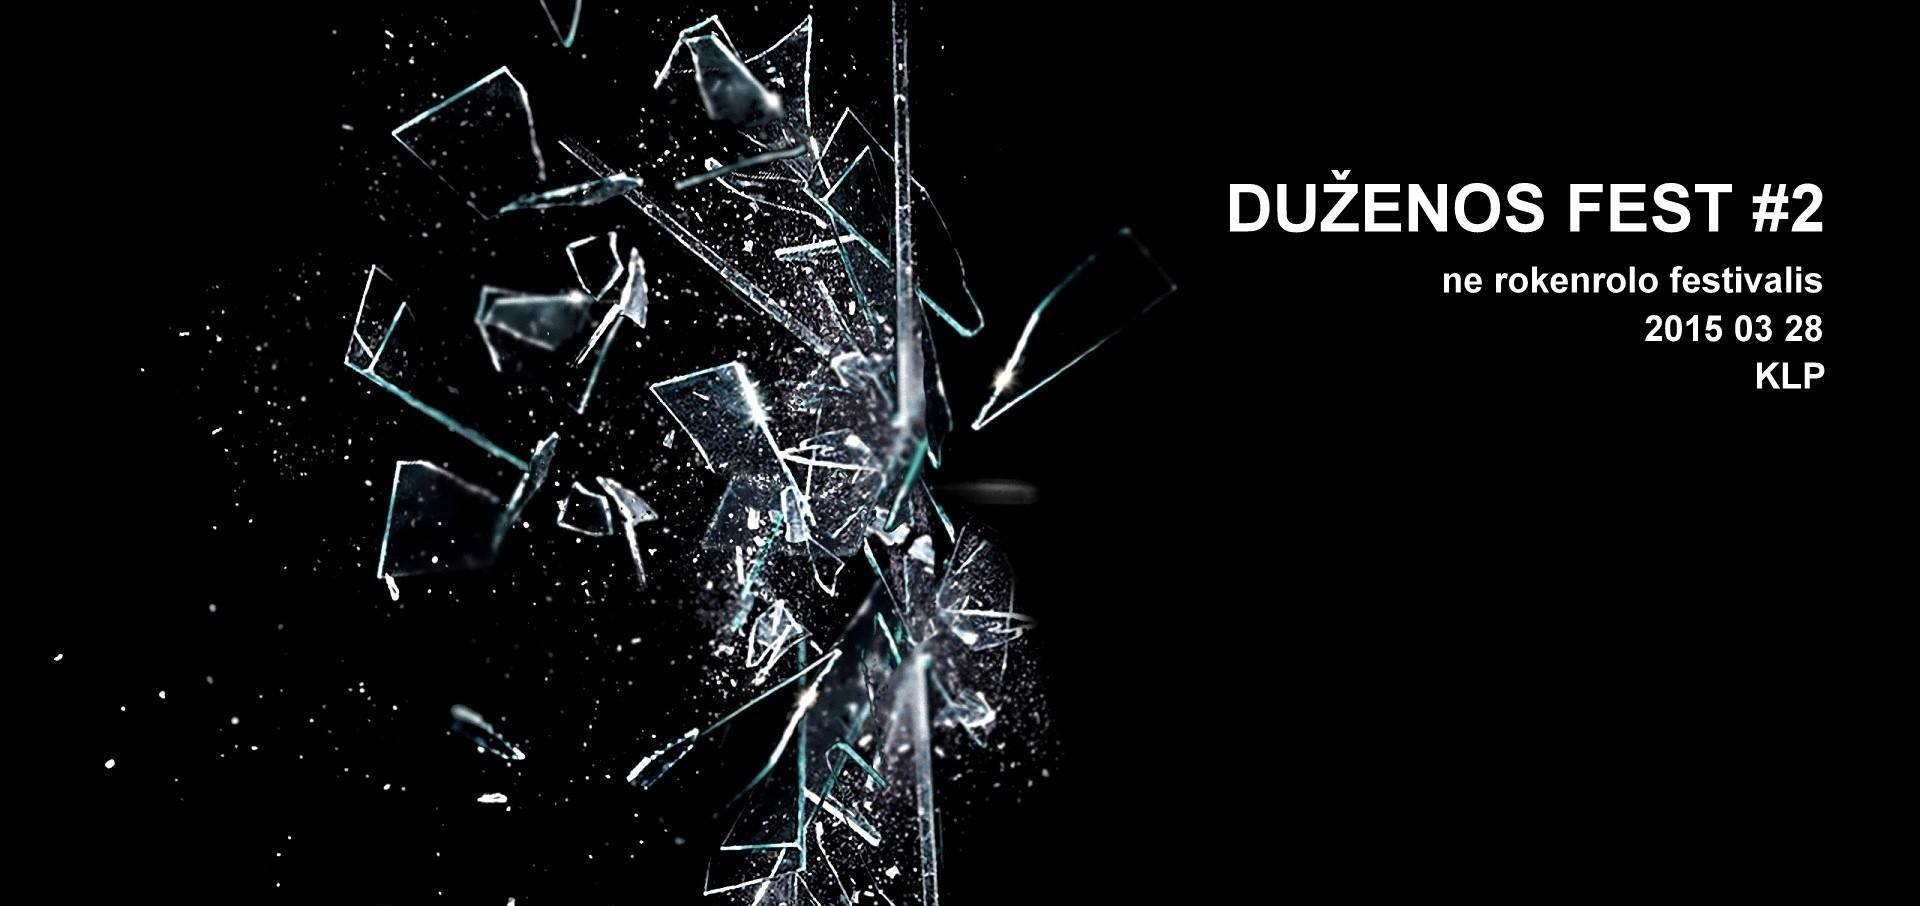 duzenos fest 2 broken glass cut